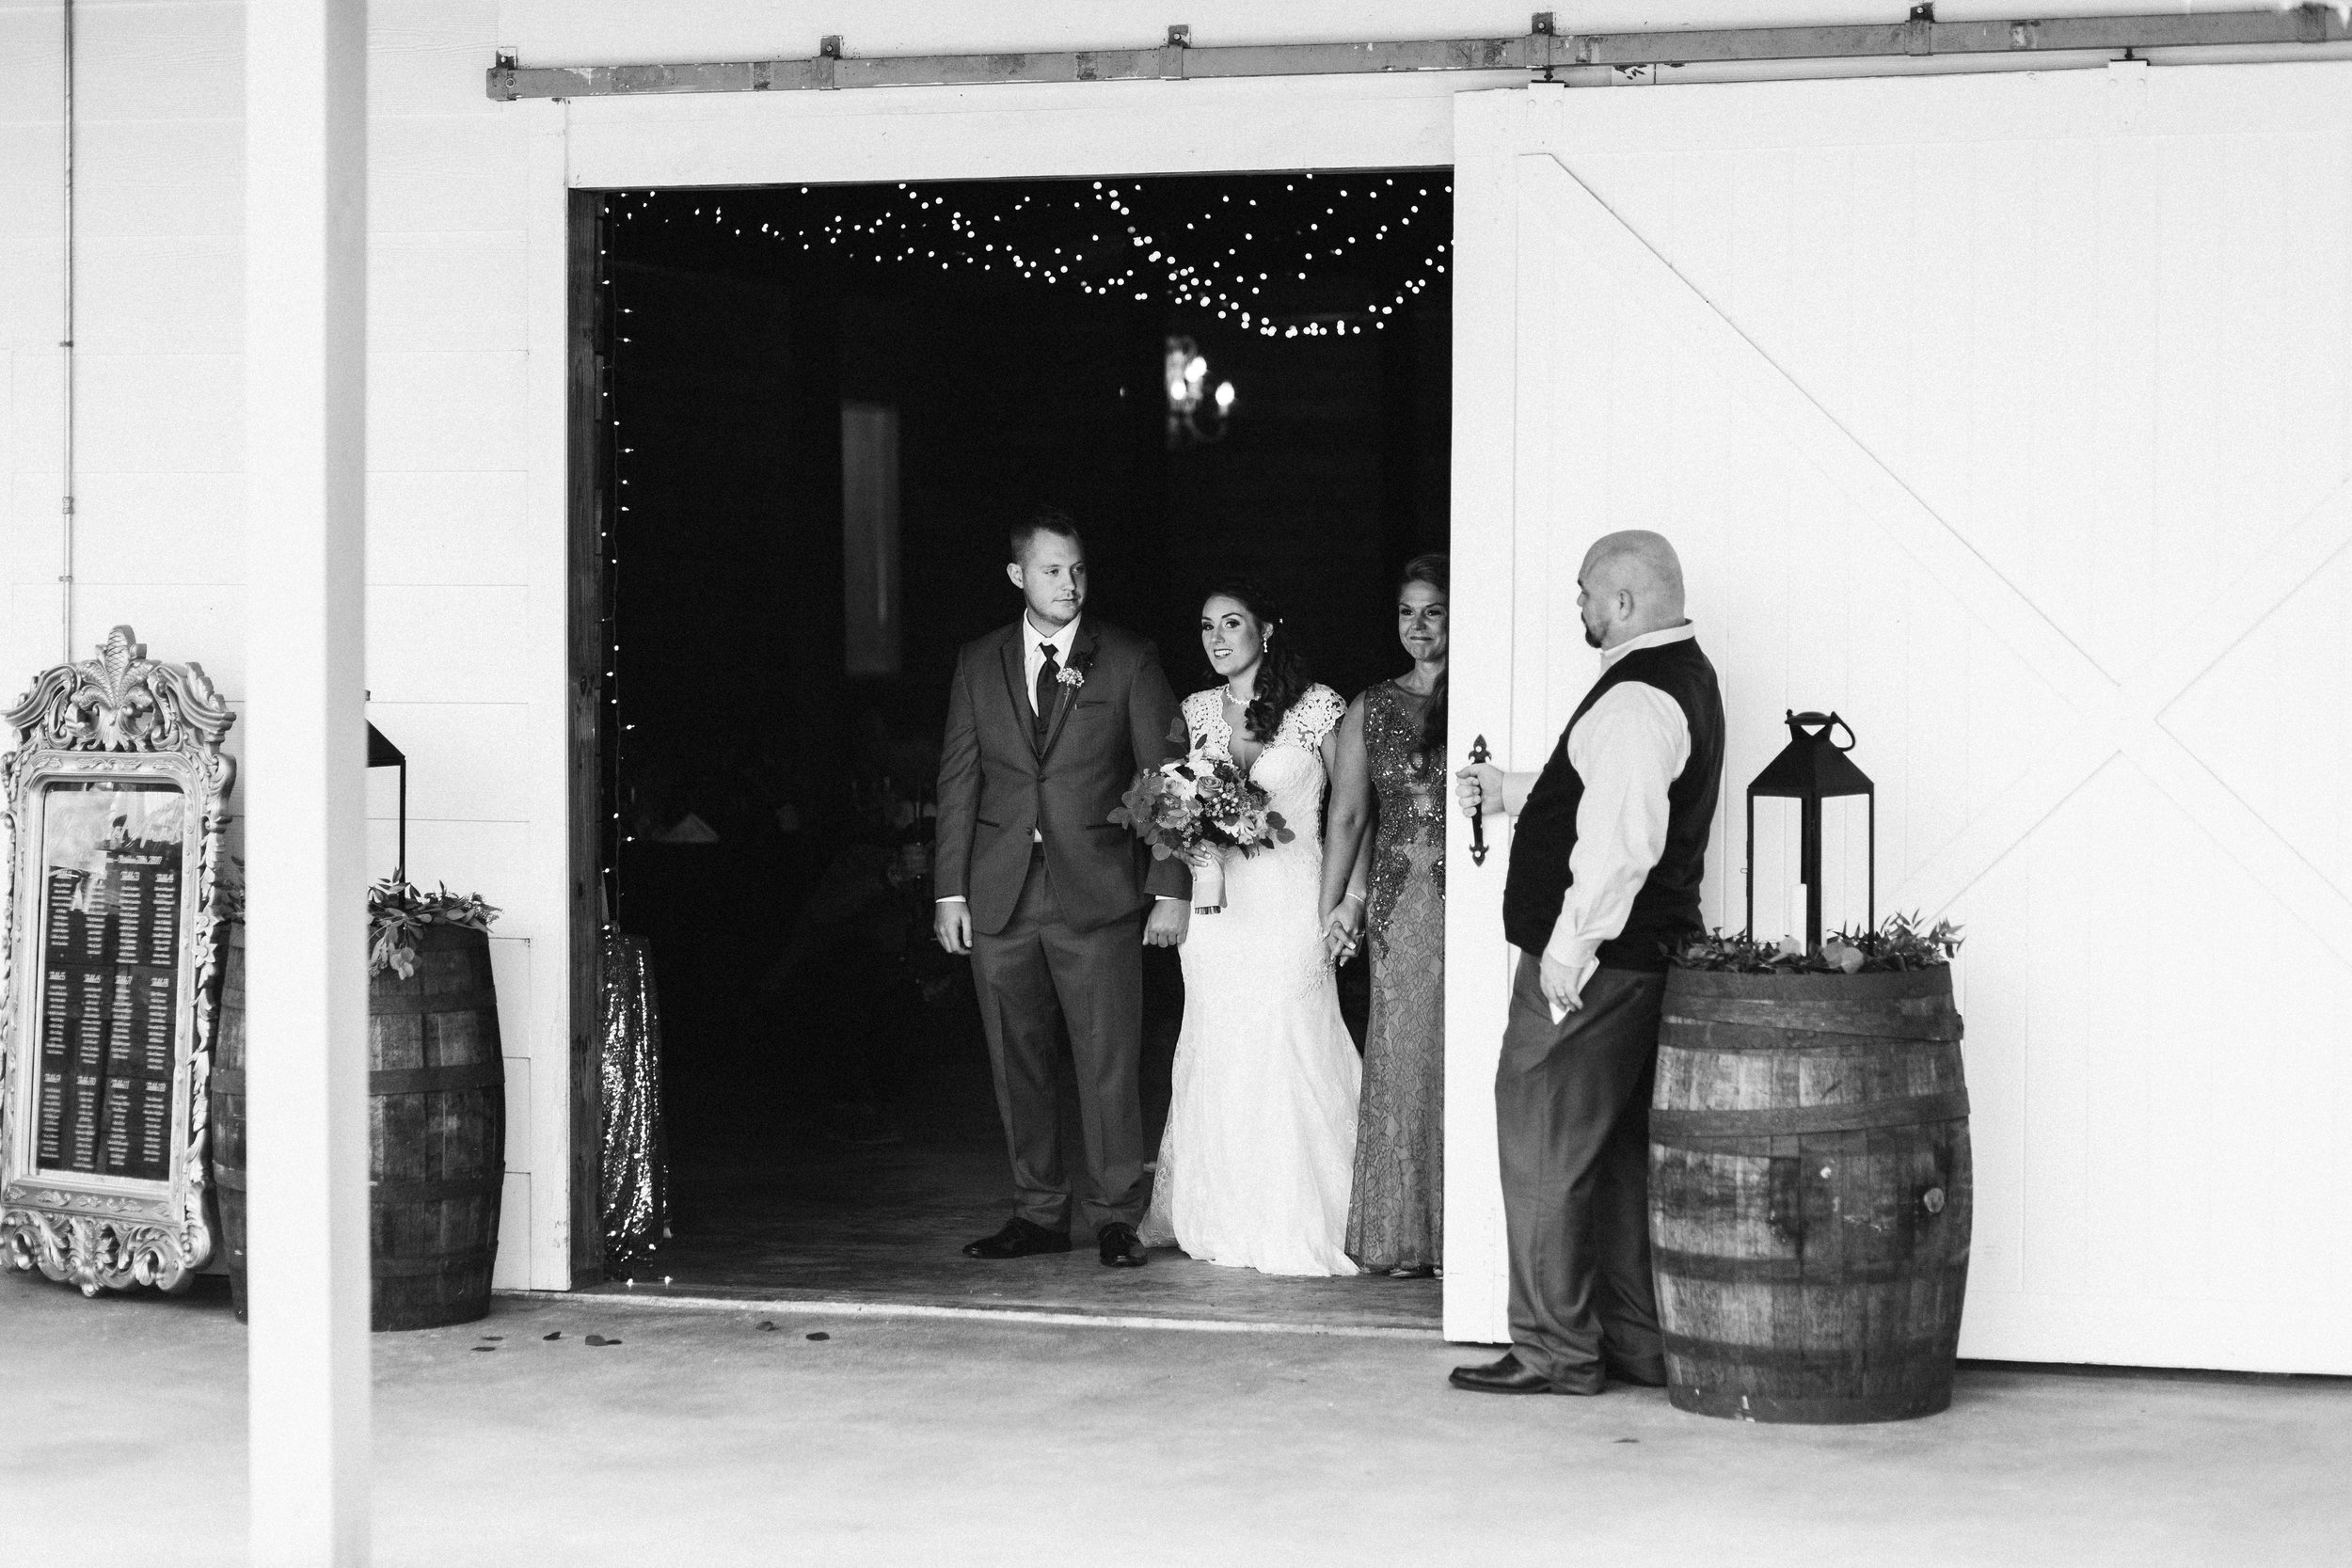 2017.10.28 Lana and Chadd Ragone Sterling Stables Cocoa Wedding (381 of 986).jpg